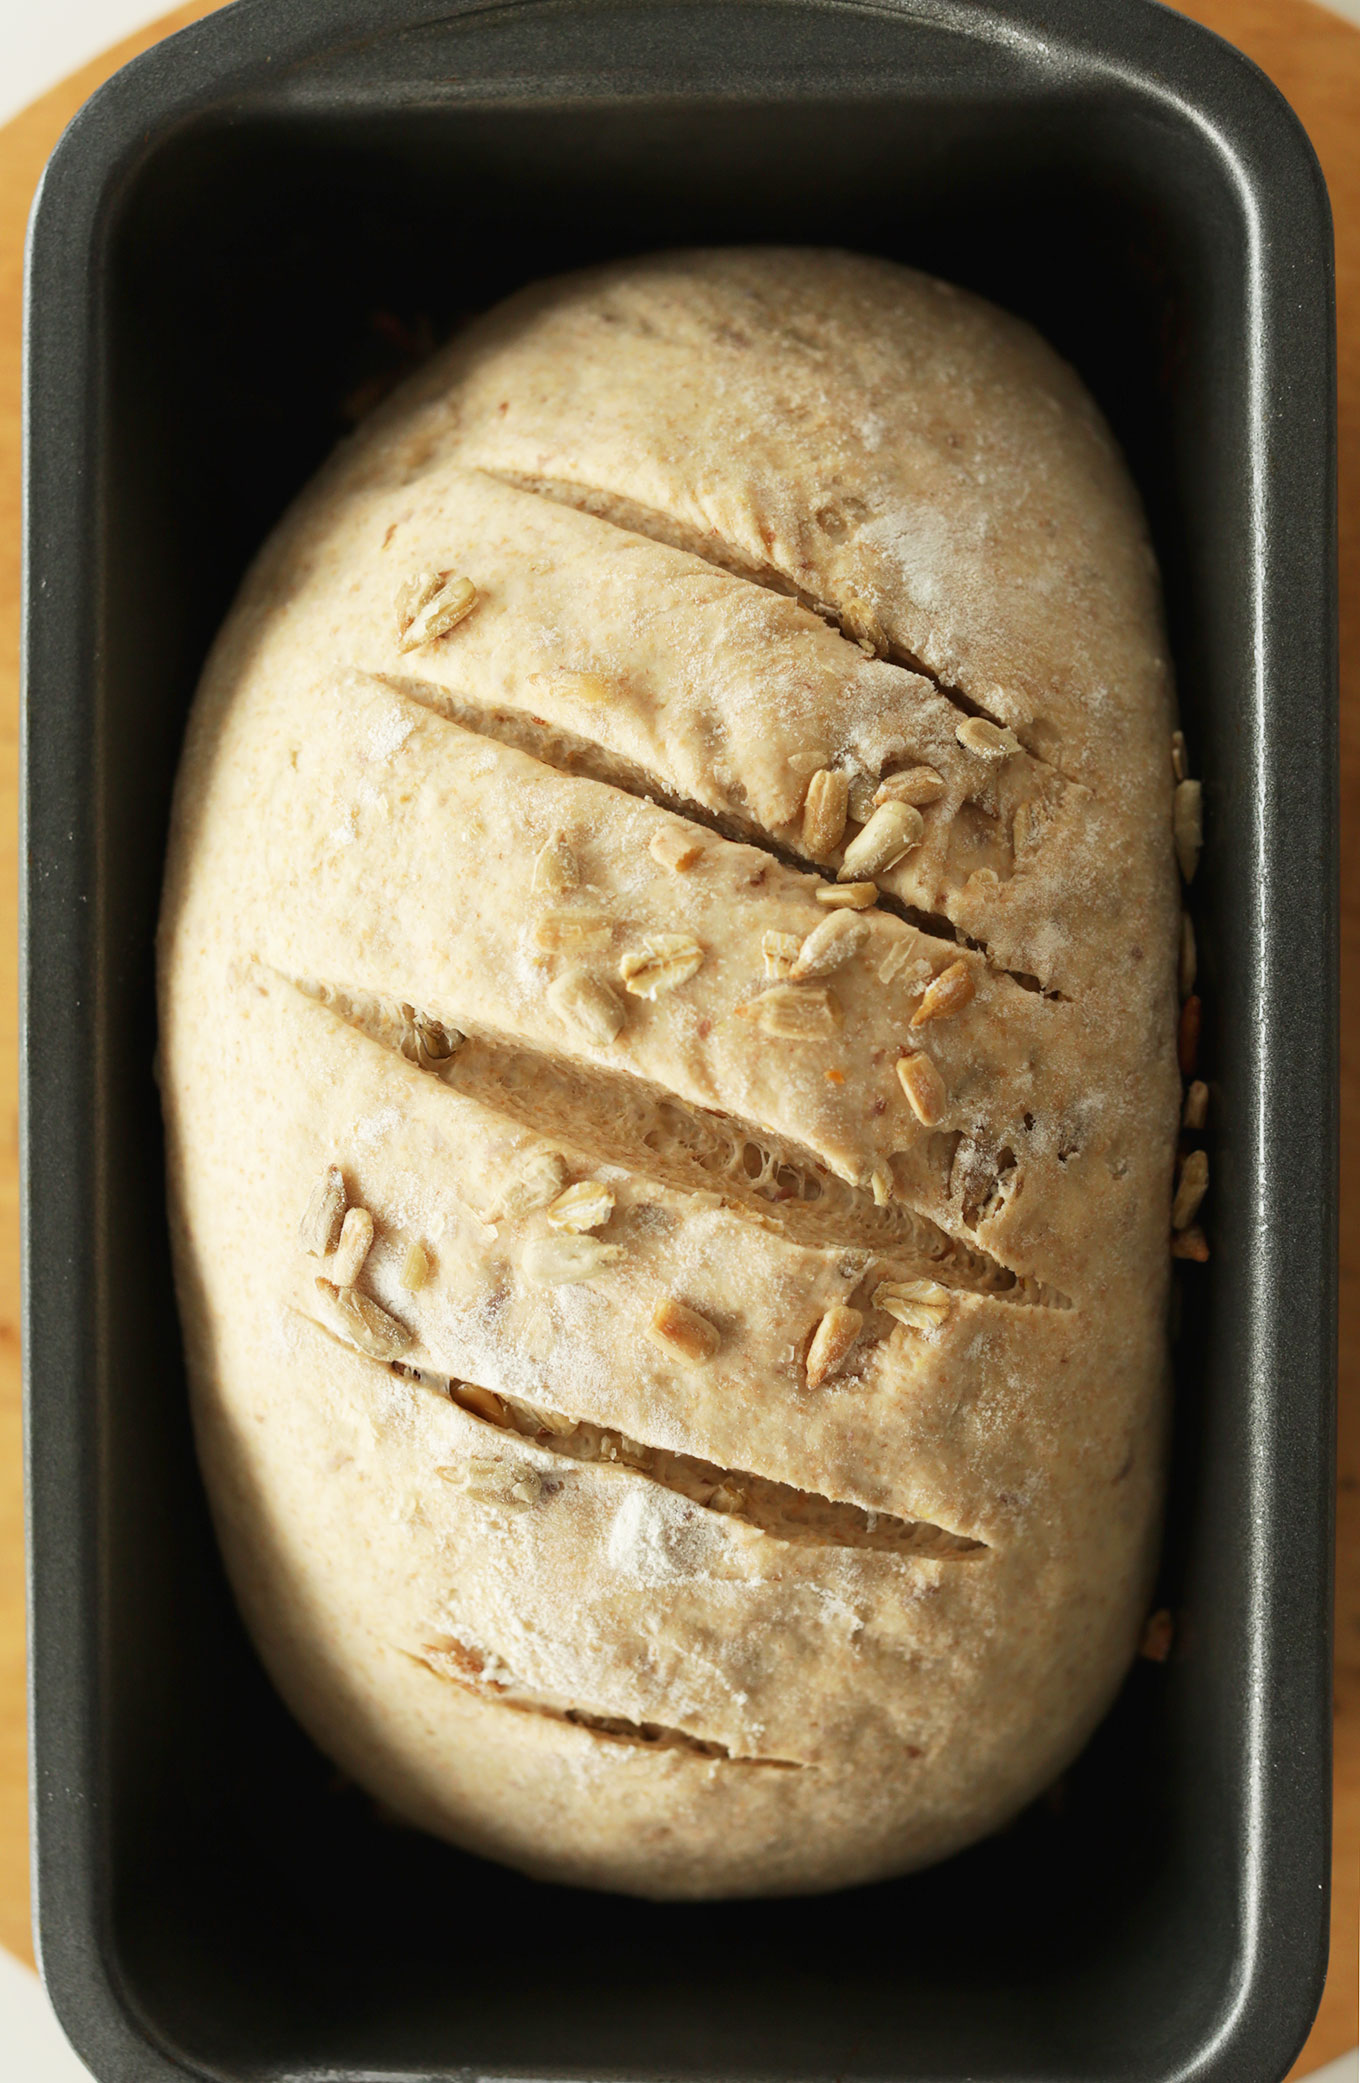 Freshly baked loaf of Whole Grain Seedy Vegan Bread in a bread pan